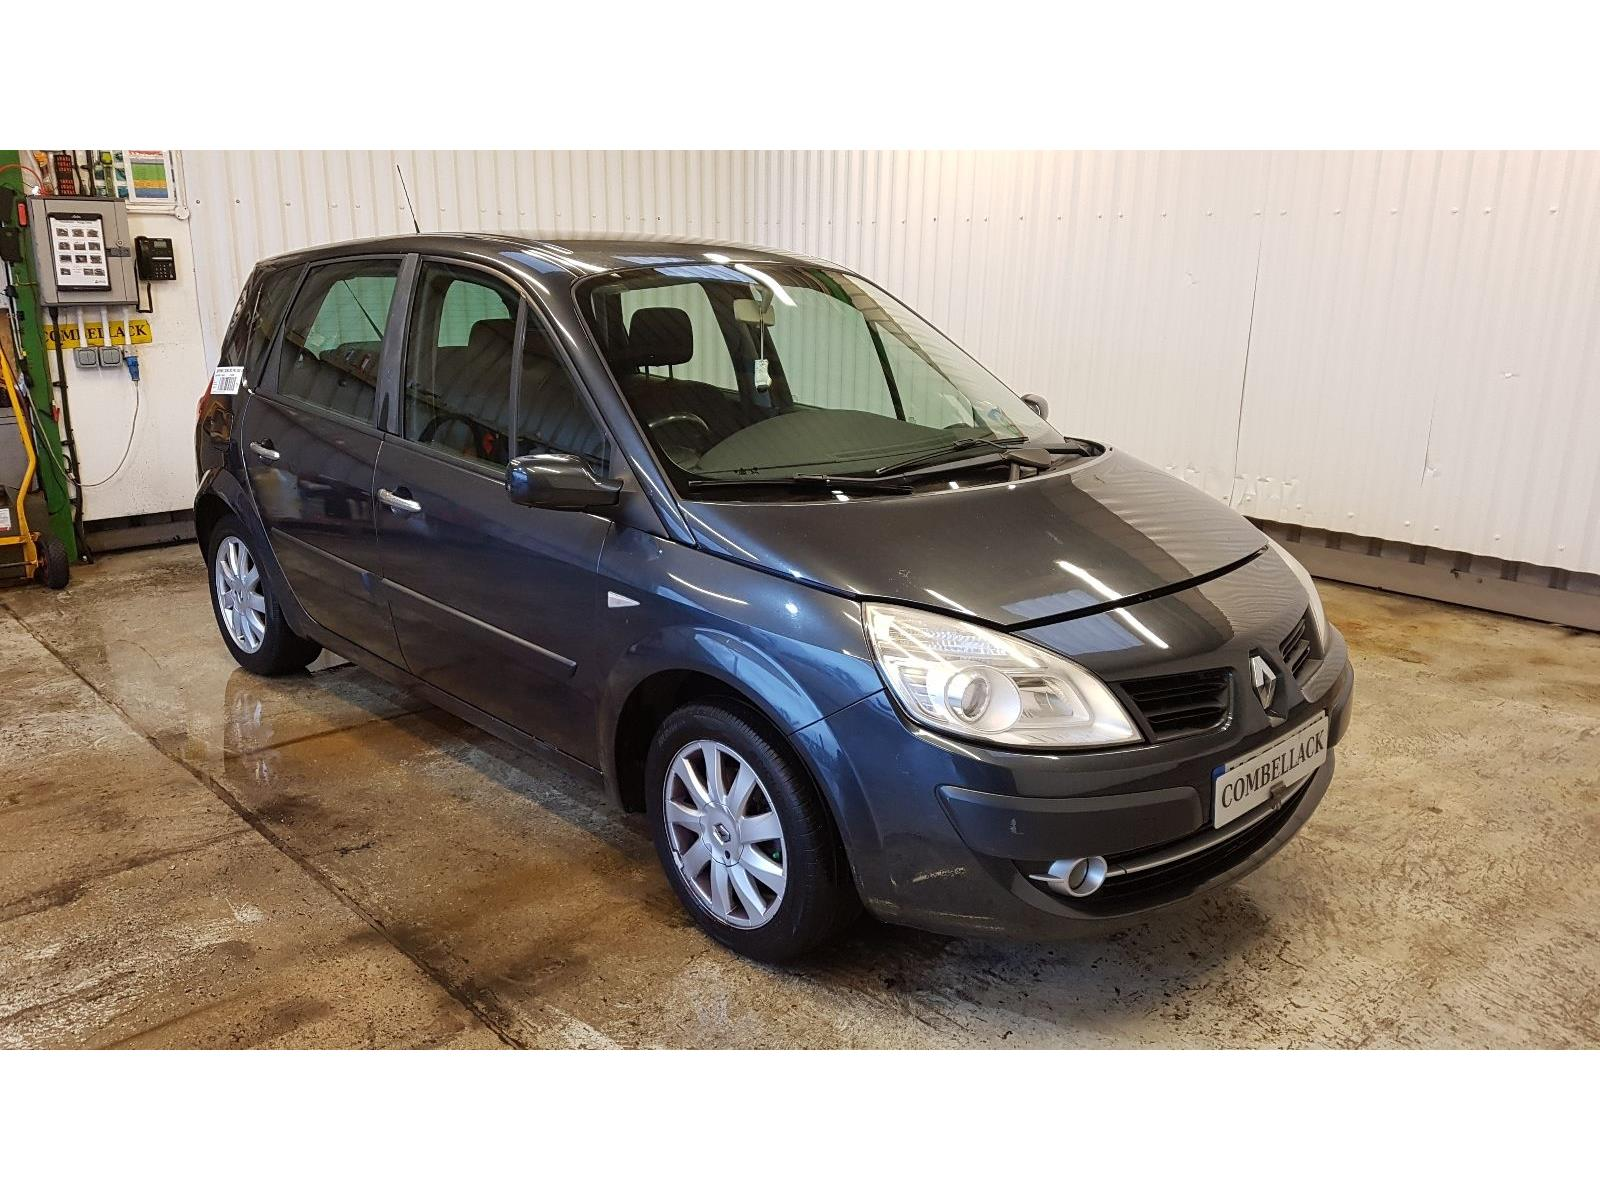 RENAULT MK2 (Ph2) (X84) 2003 TO 2009 DYNAMIQUE VVT 5 DOOR MPV